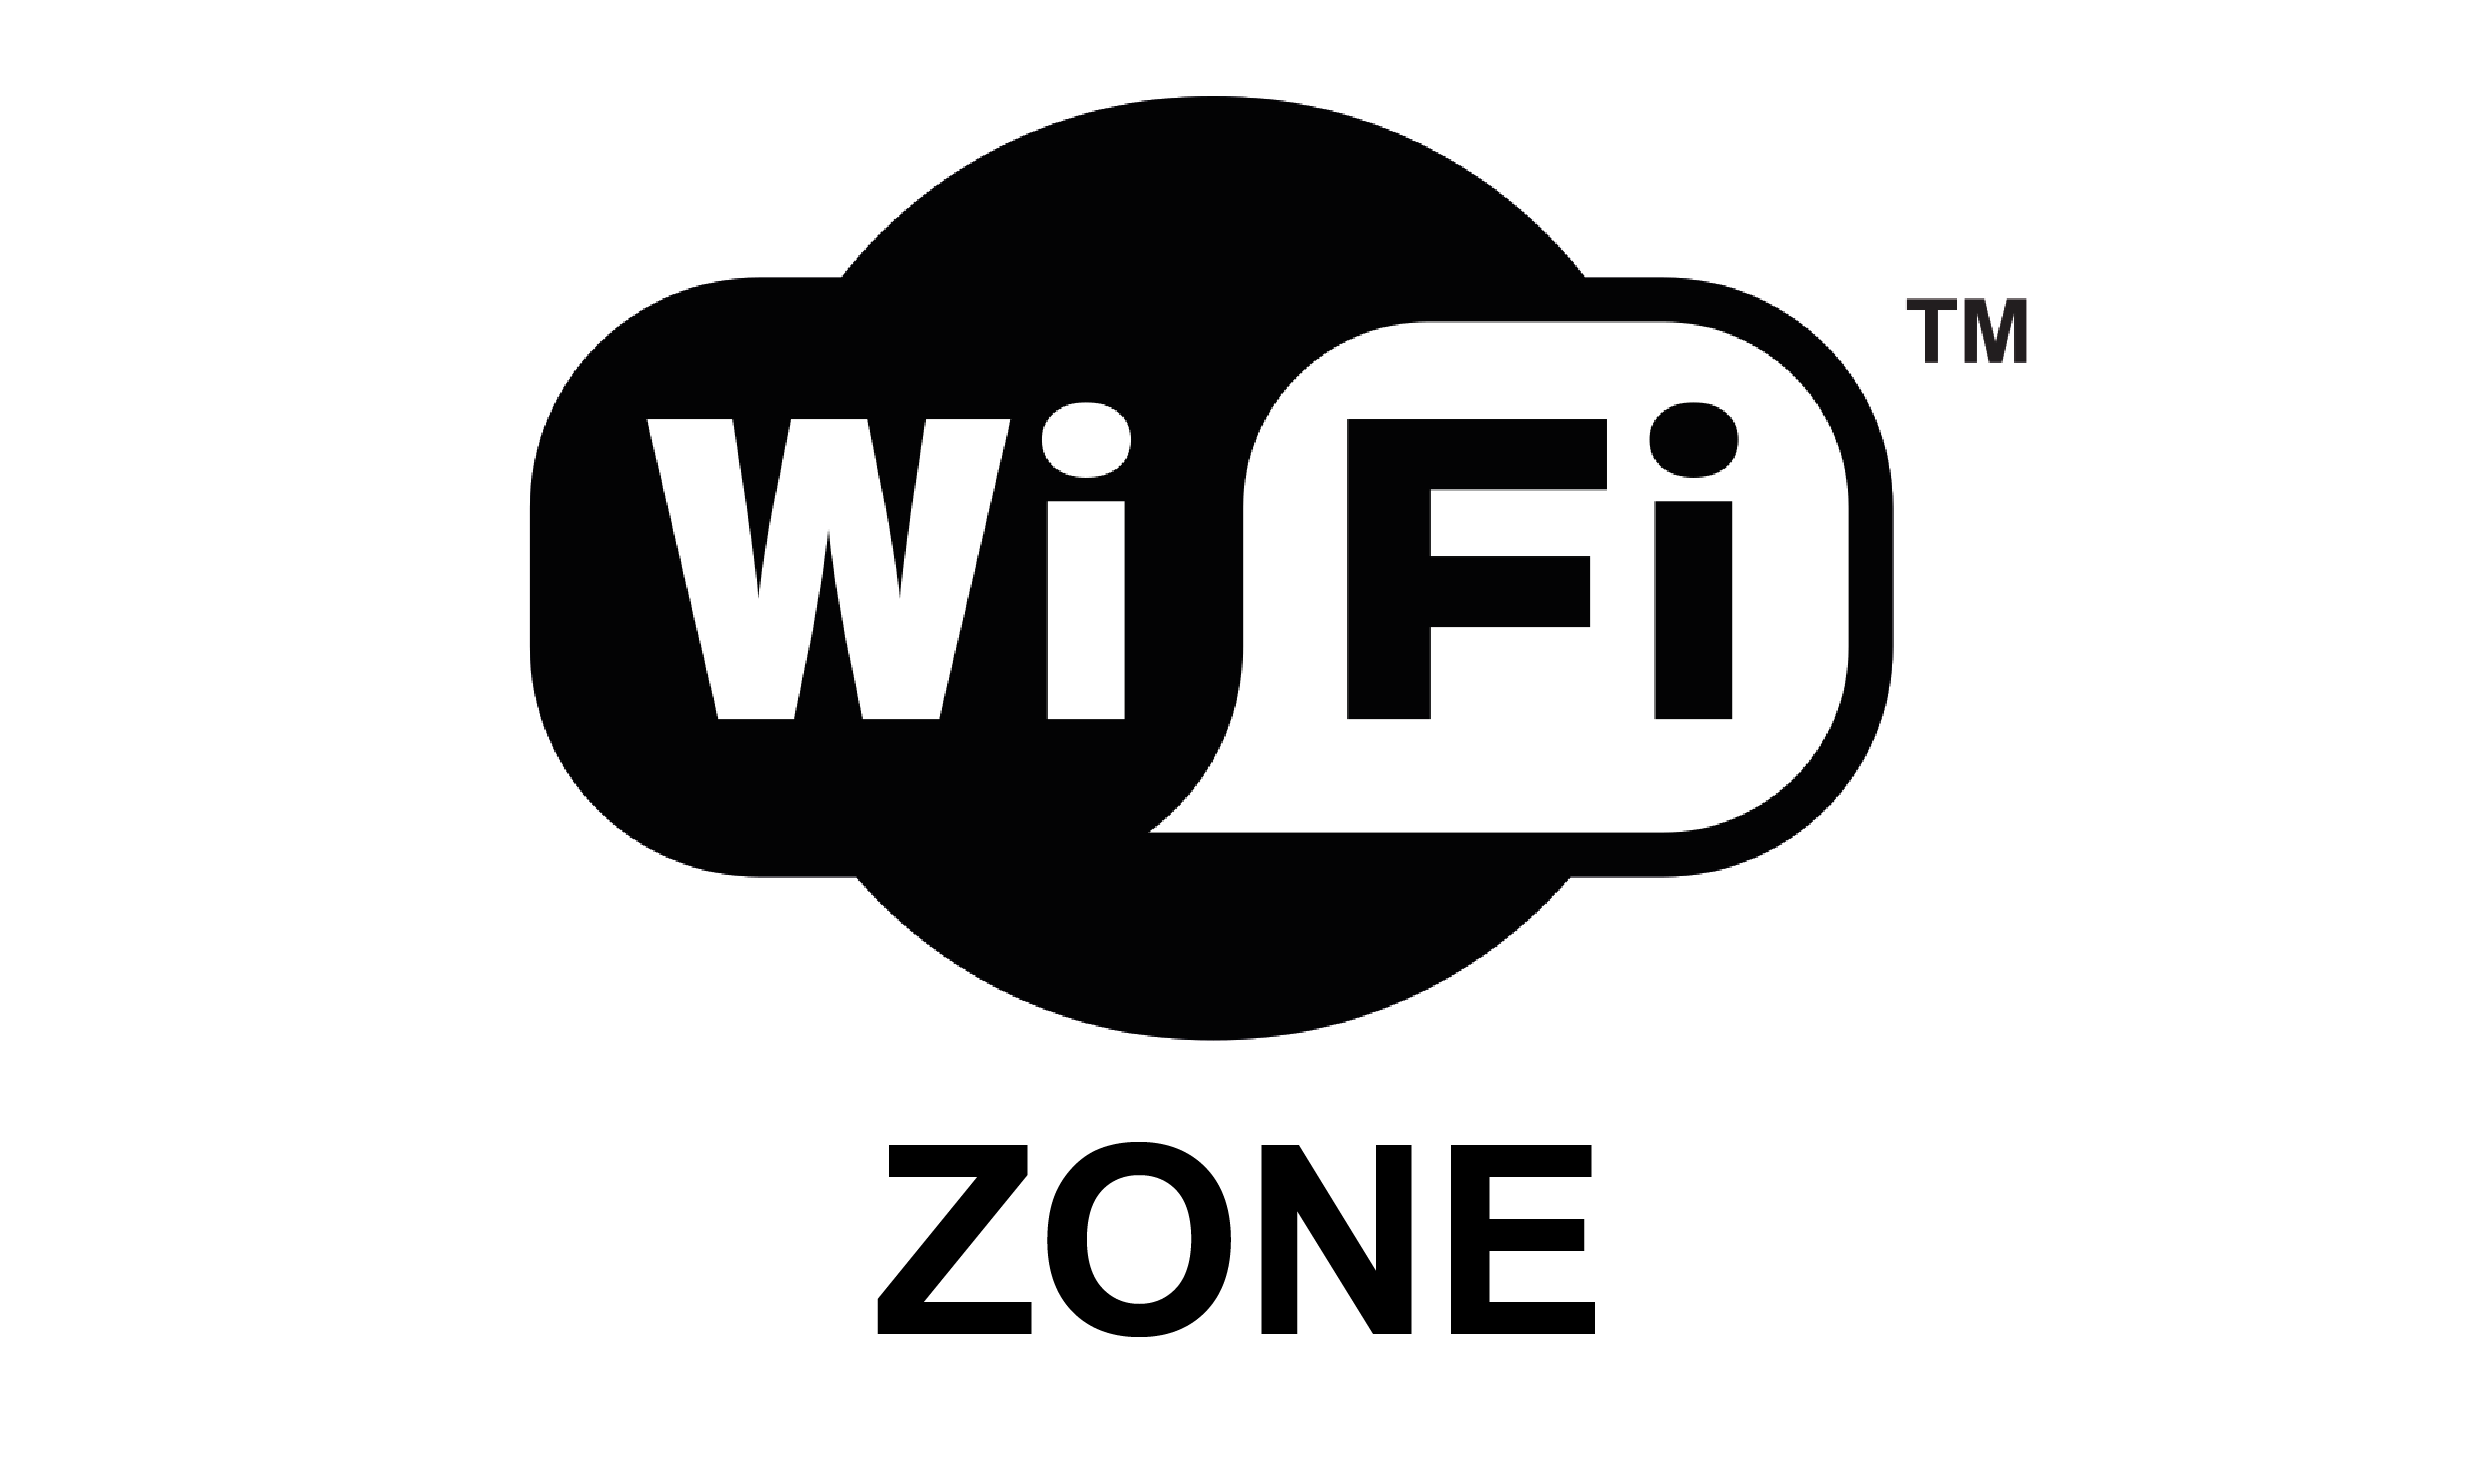 WiFi zone symbol labels